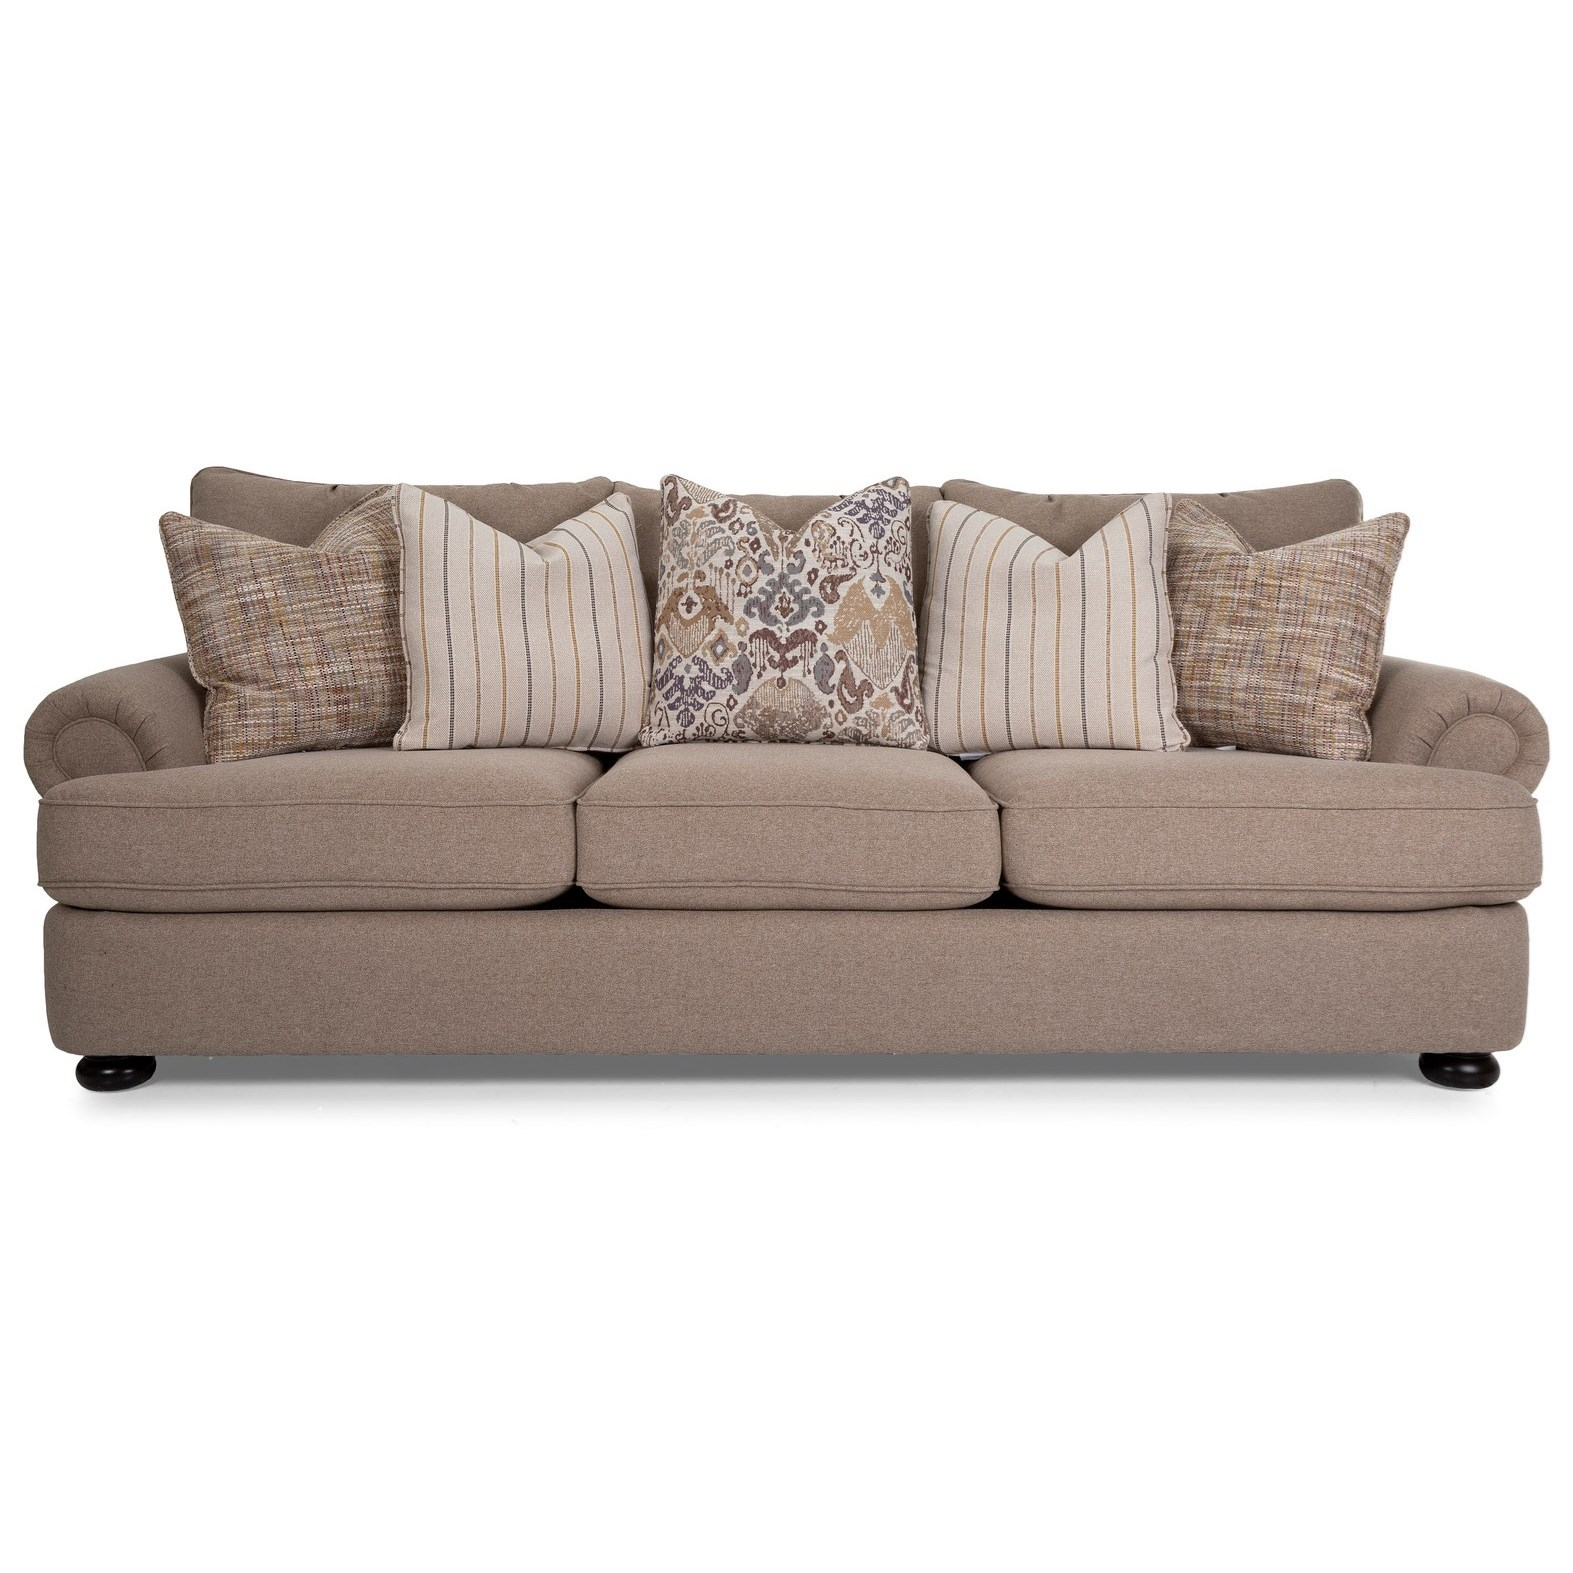 2051 Sofa by Decor-Rest at Reid's Furniture